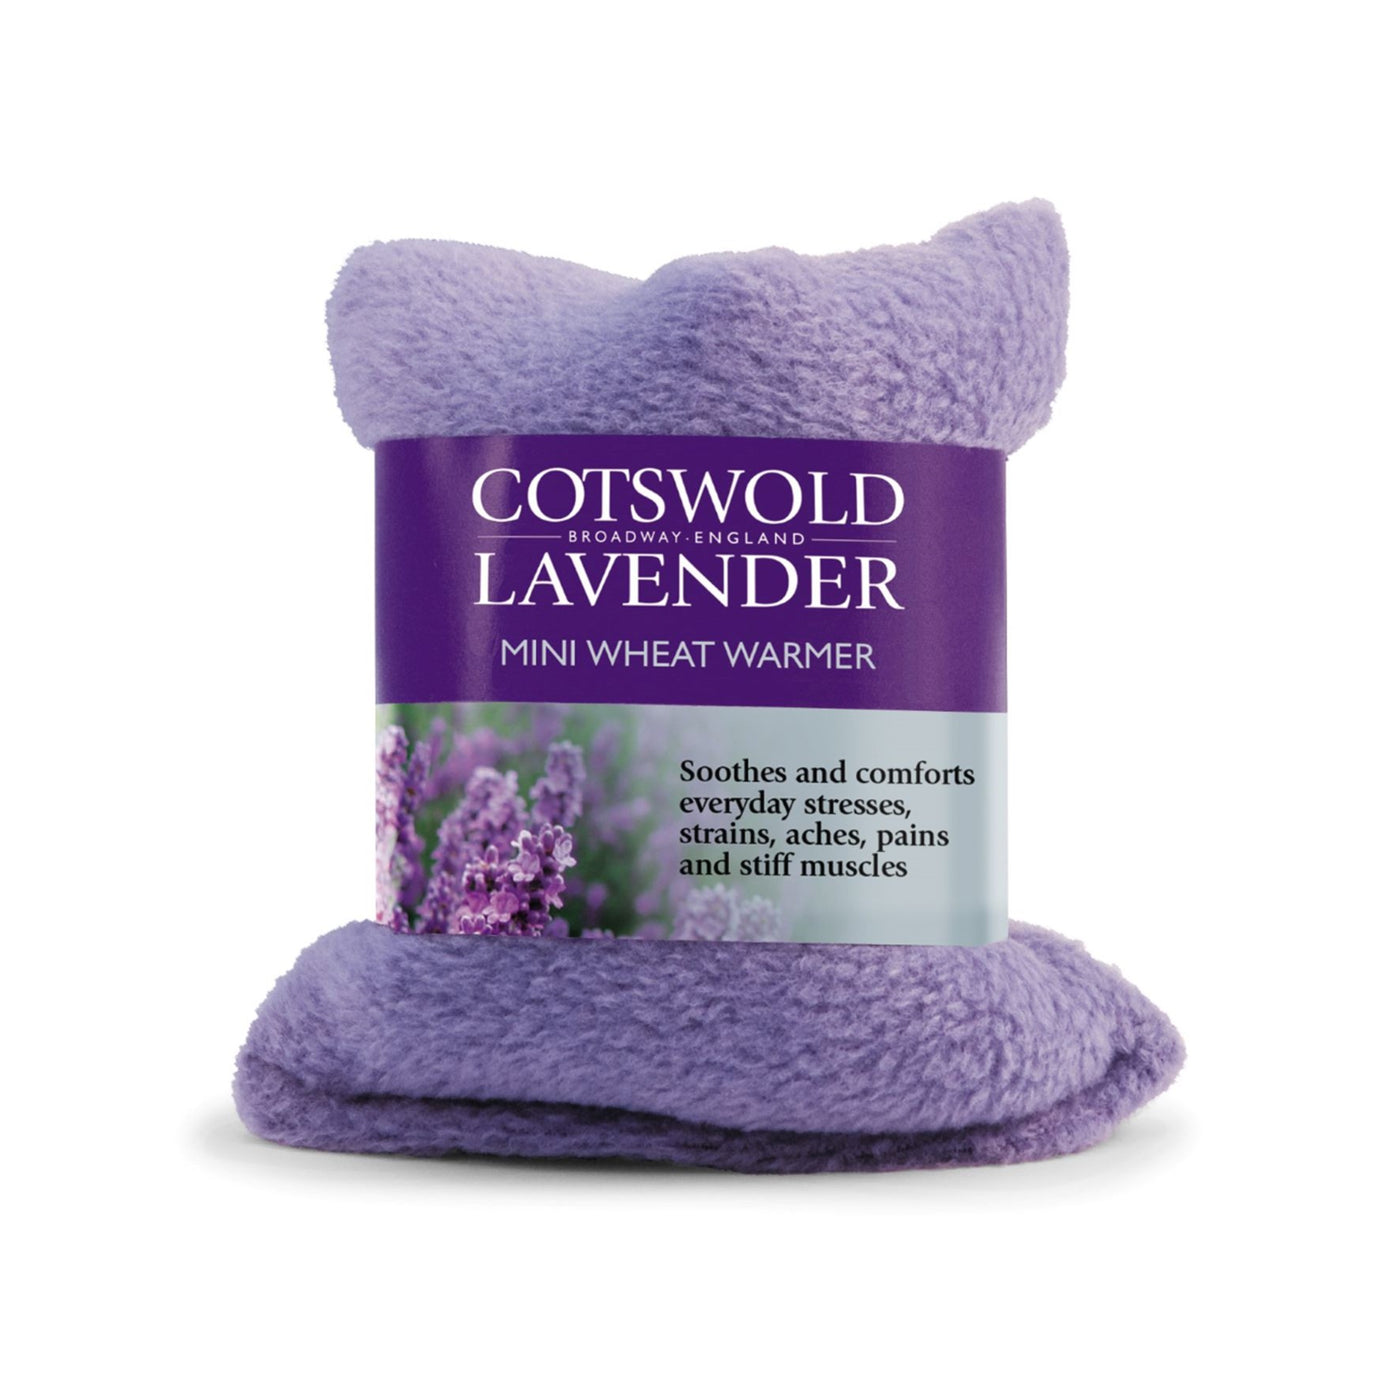 Cotswold Lavender Mini Lavender Wheat Warmer